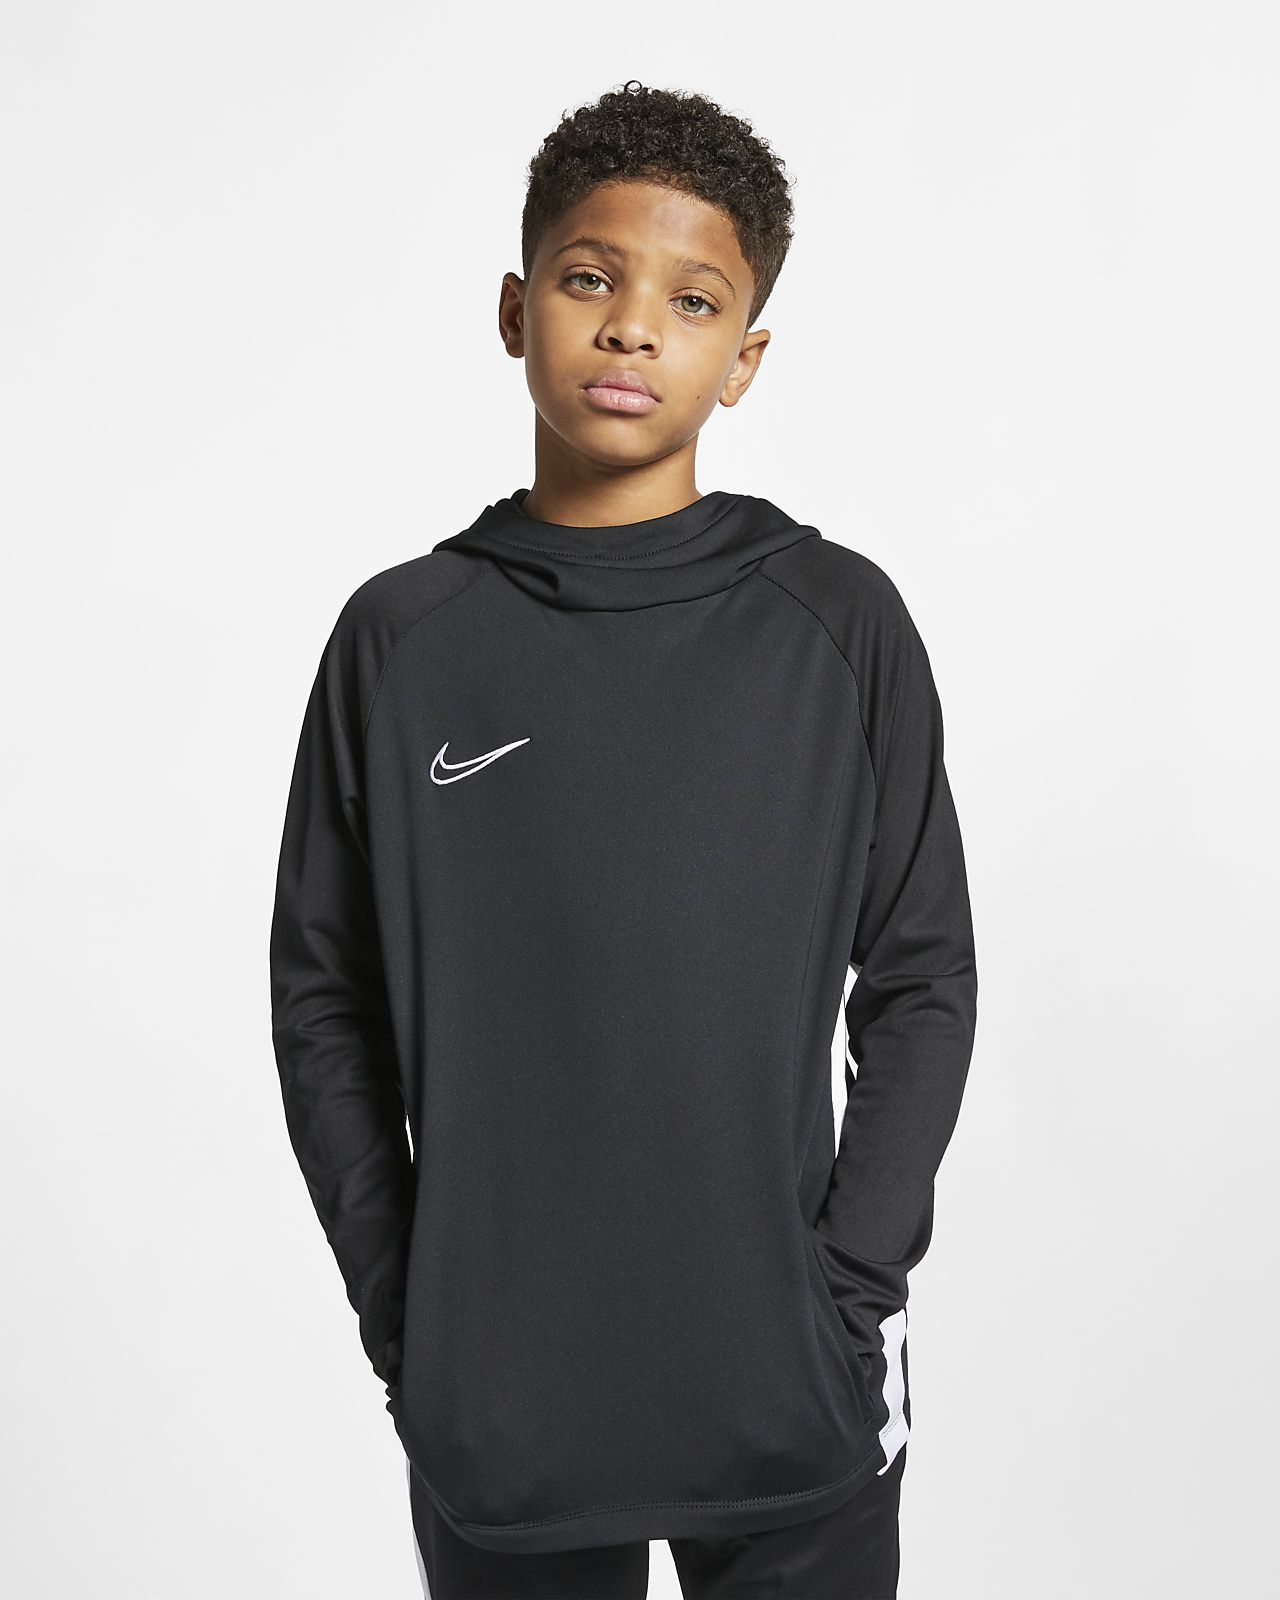 Sweat à capuche de football Nike Dri-FIT Academy pour Enfant plus âgé